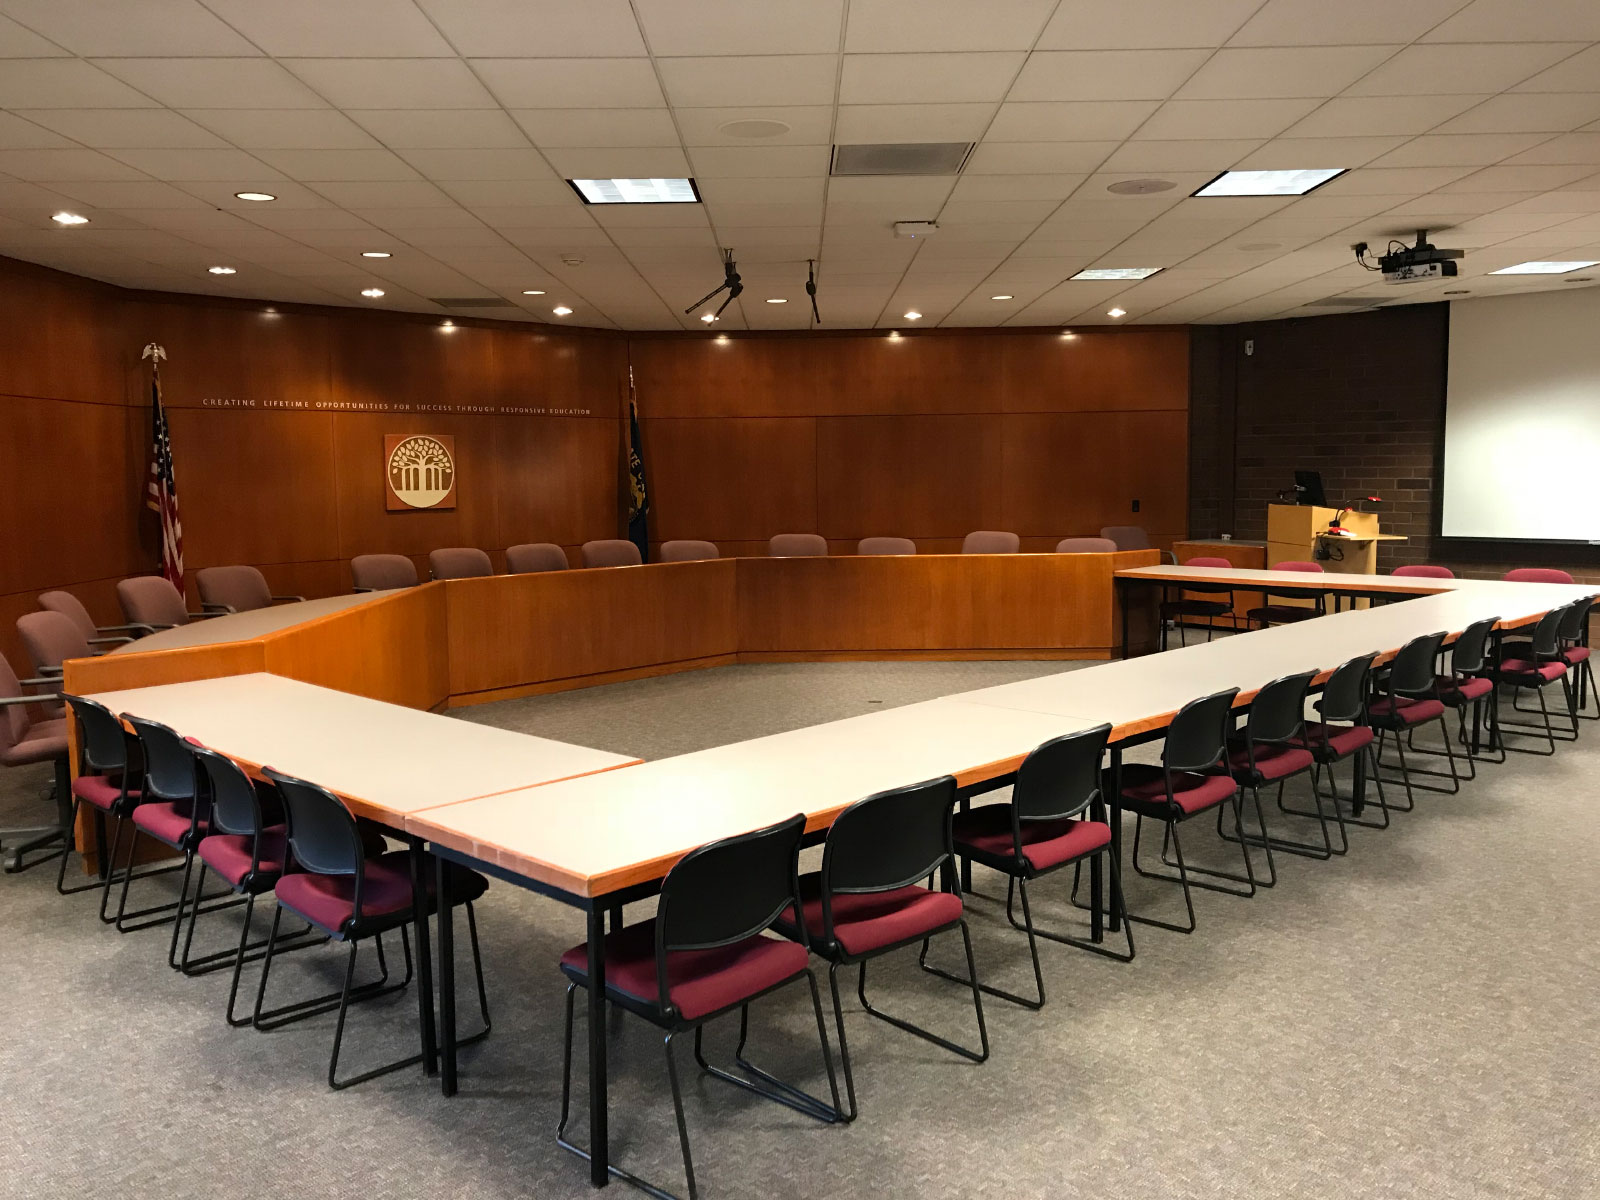 The large Community Center Board Room in room 127 at the Oregon City campus, with dozens of seats in an angular circle, with podium and projector